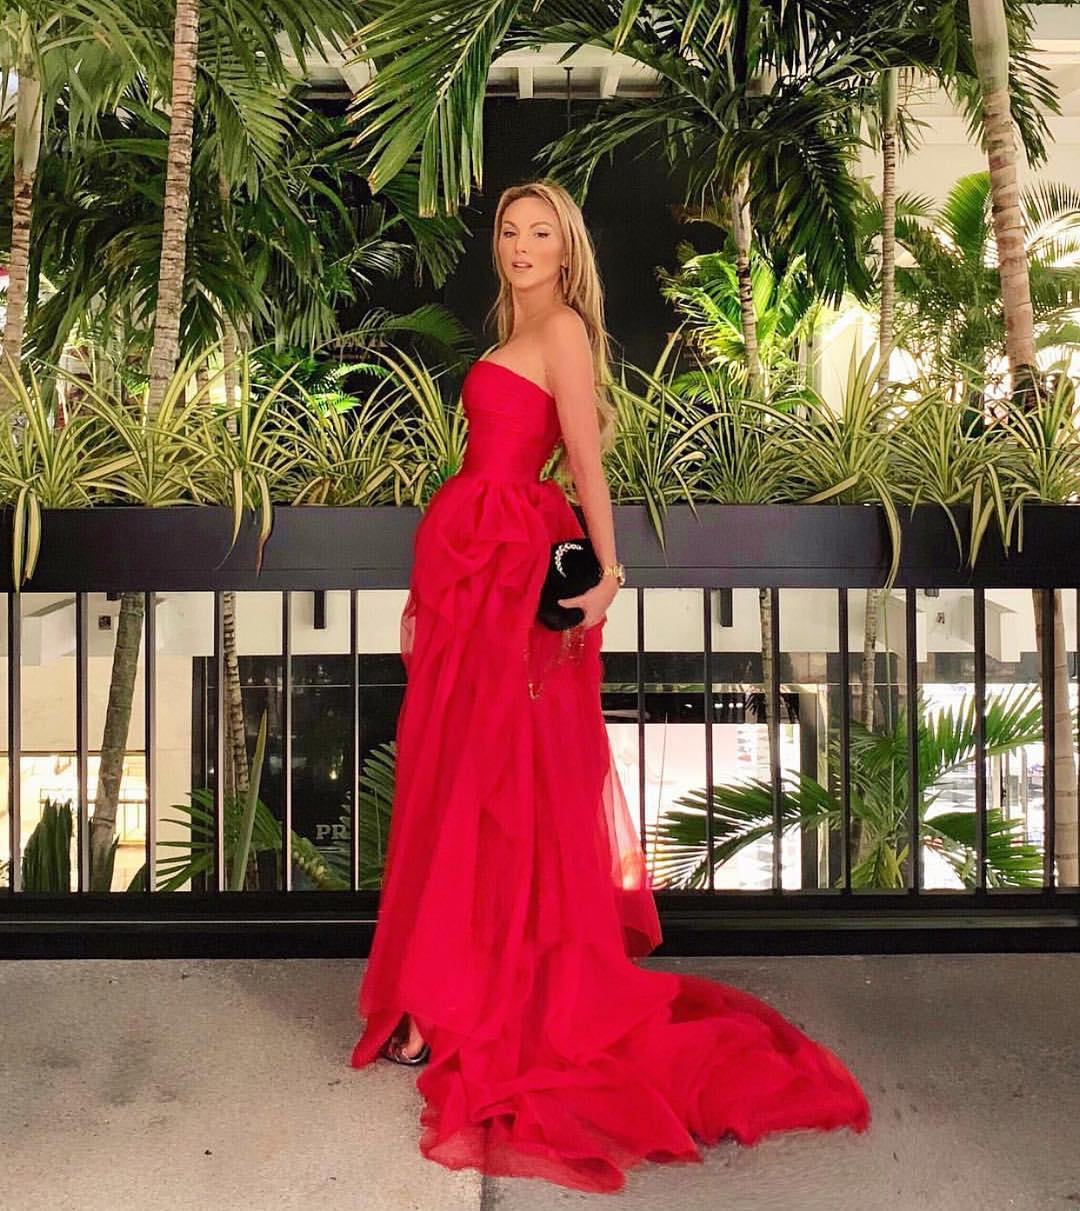 Strapless Maxi Dress In Red For Very Special Parties 2020